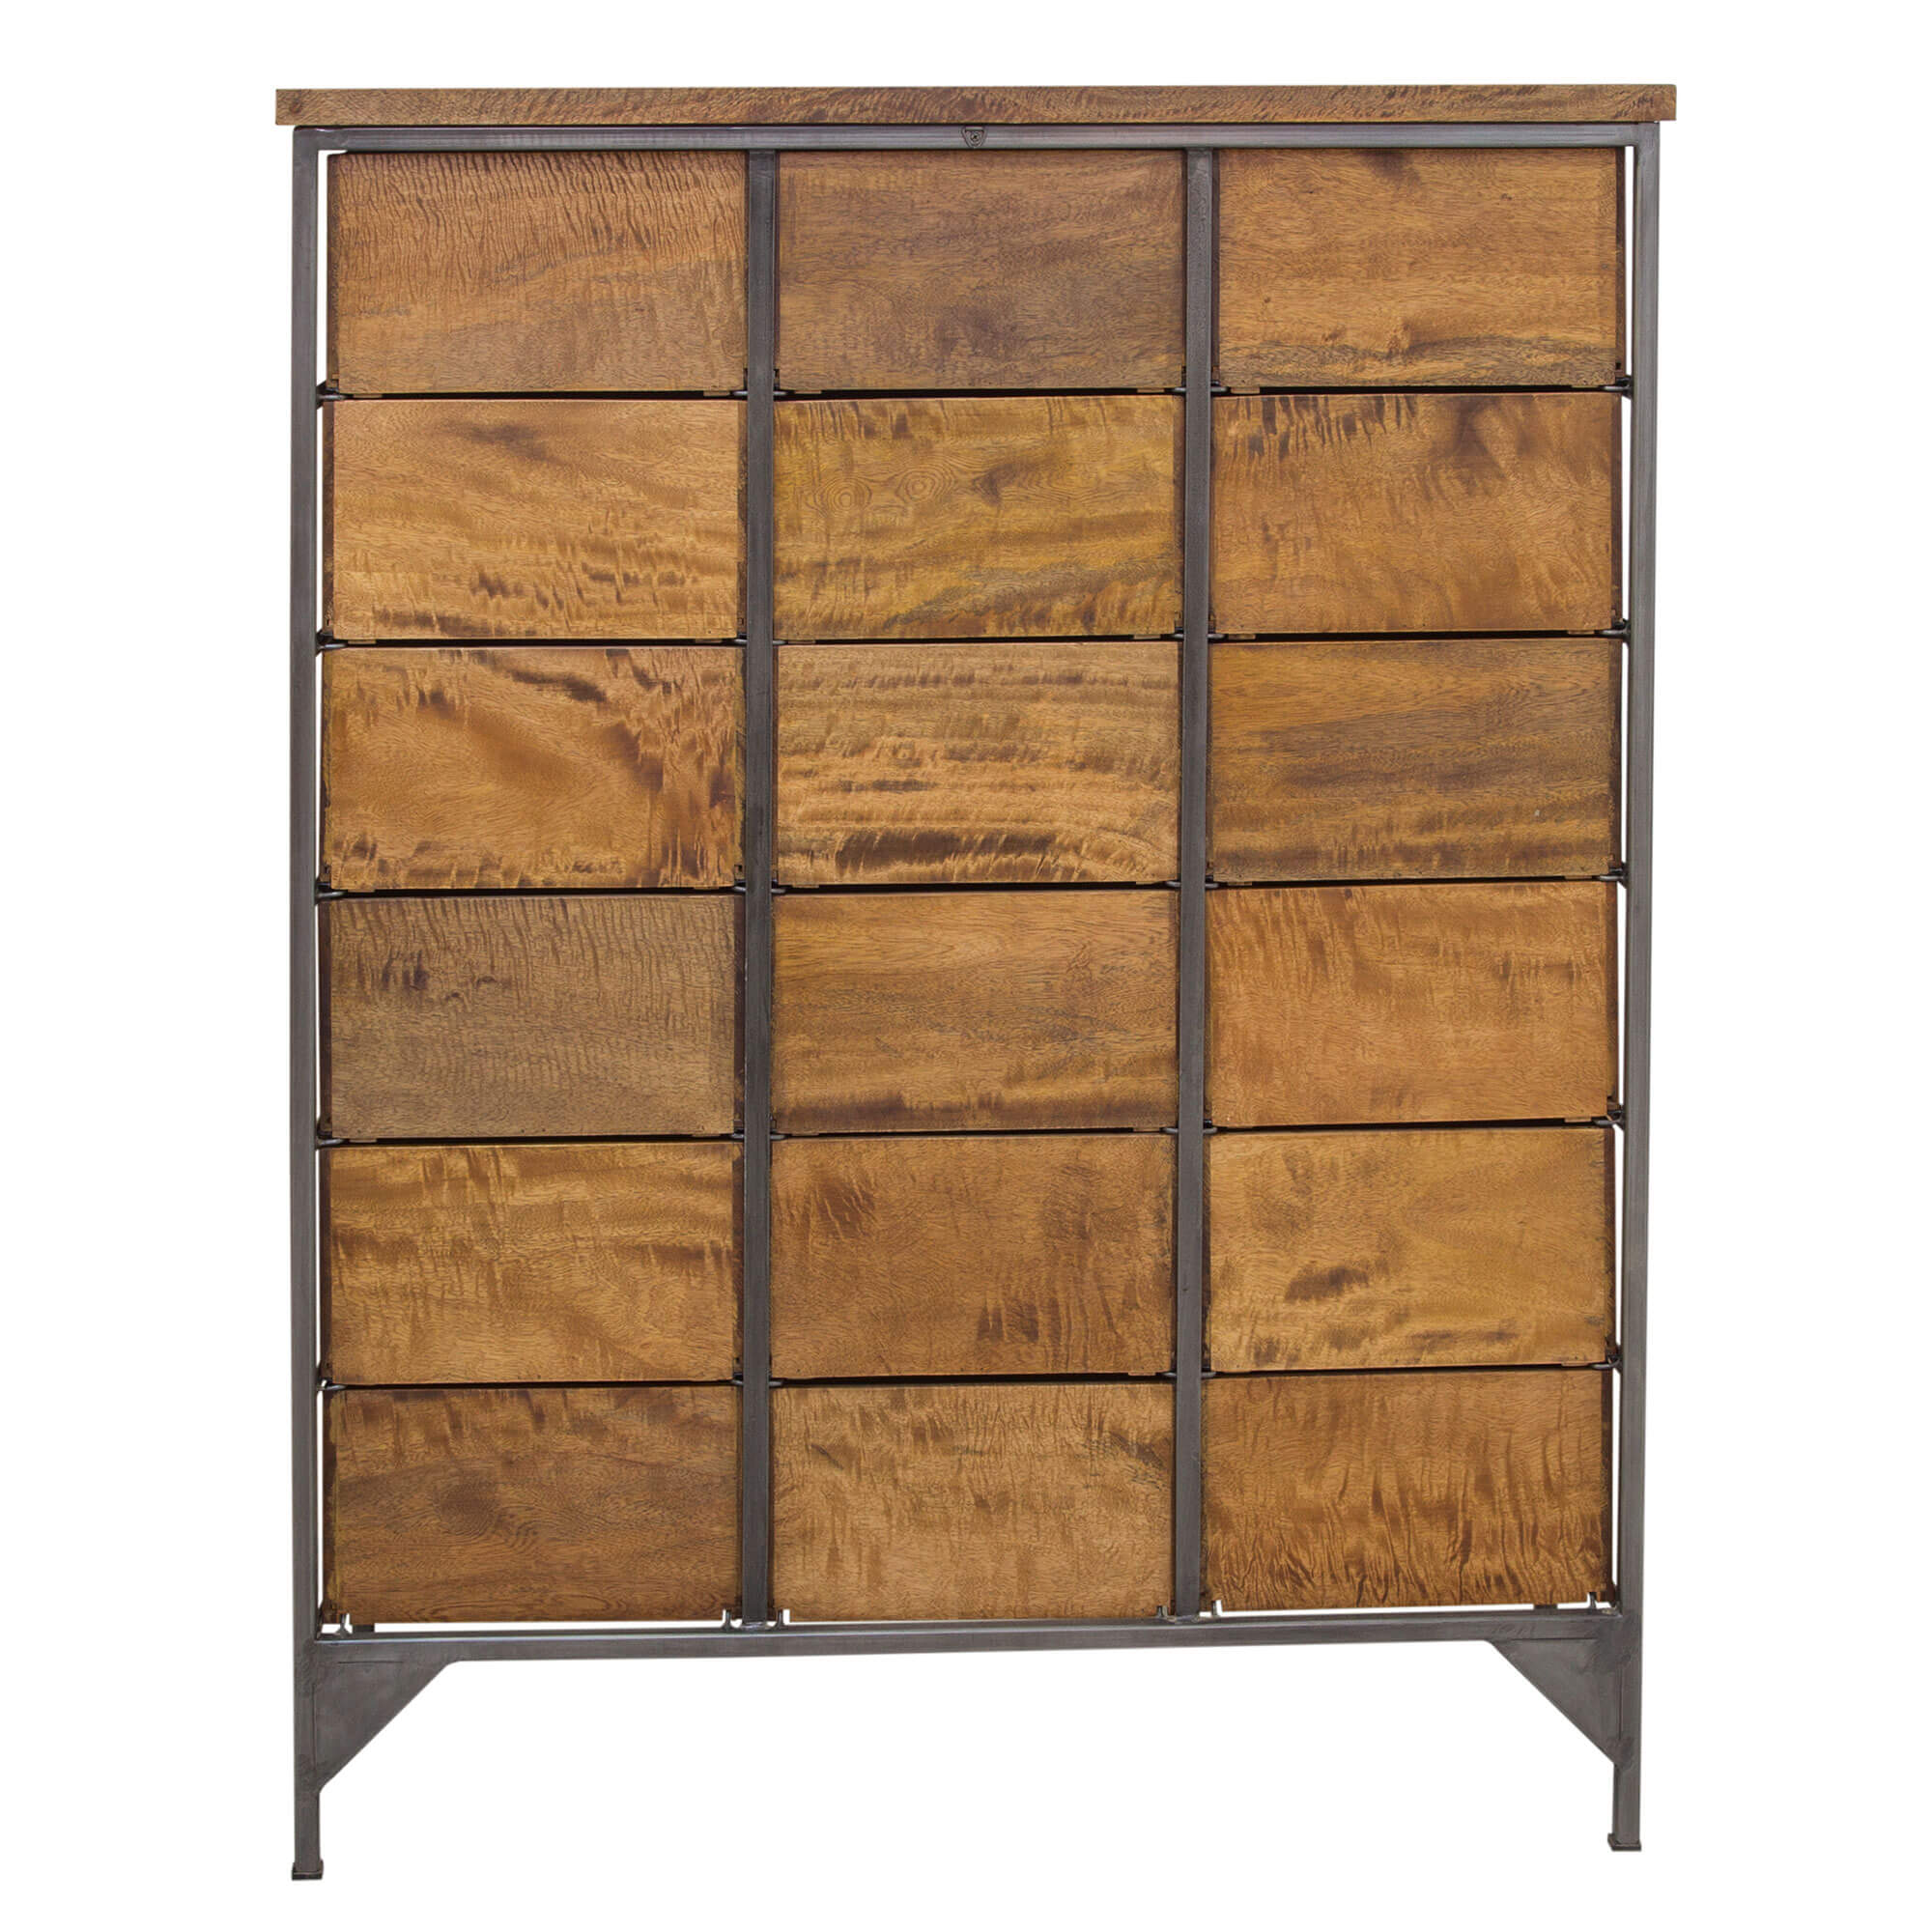 Chest Of Drawers | Dimensions 41D X 103.5W X 137H